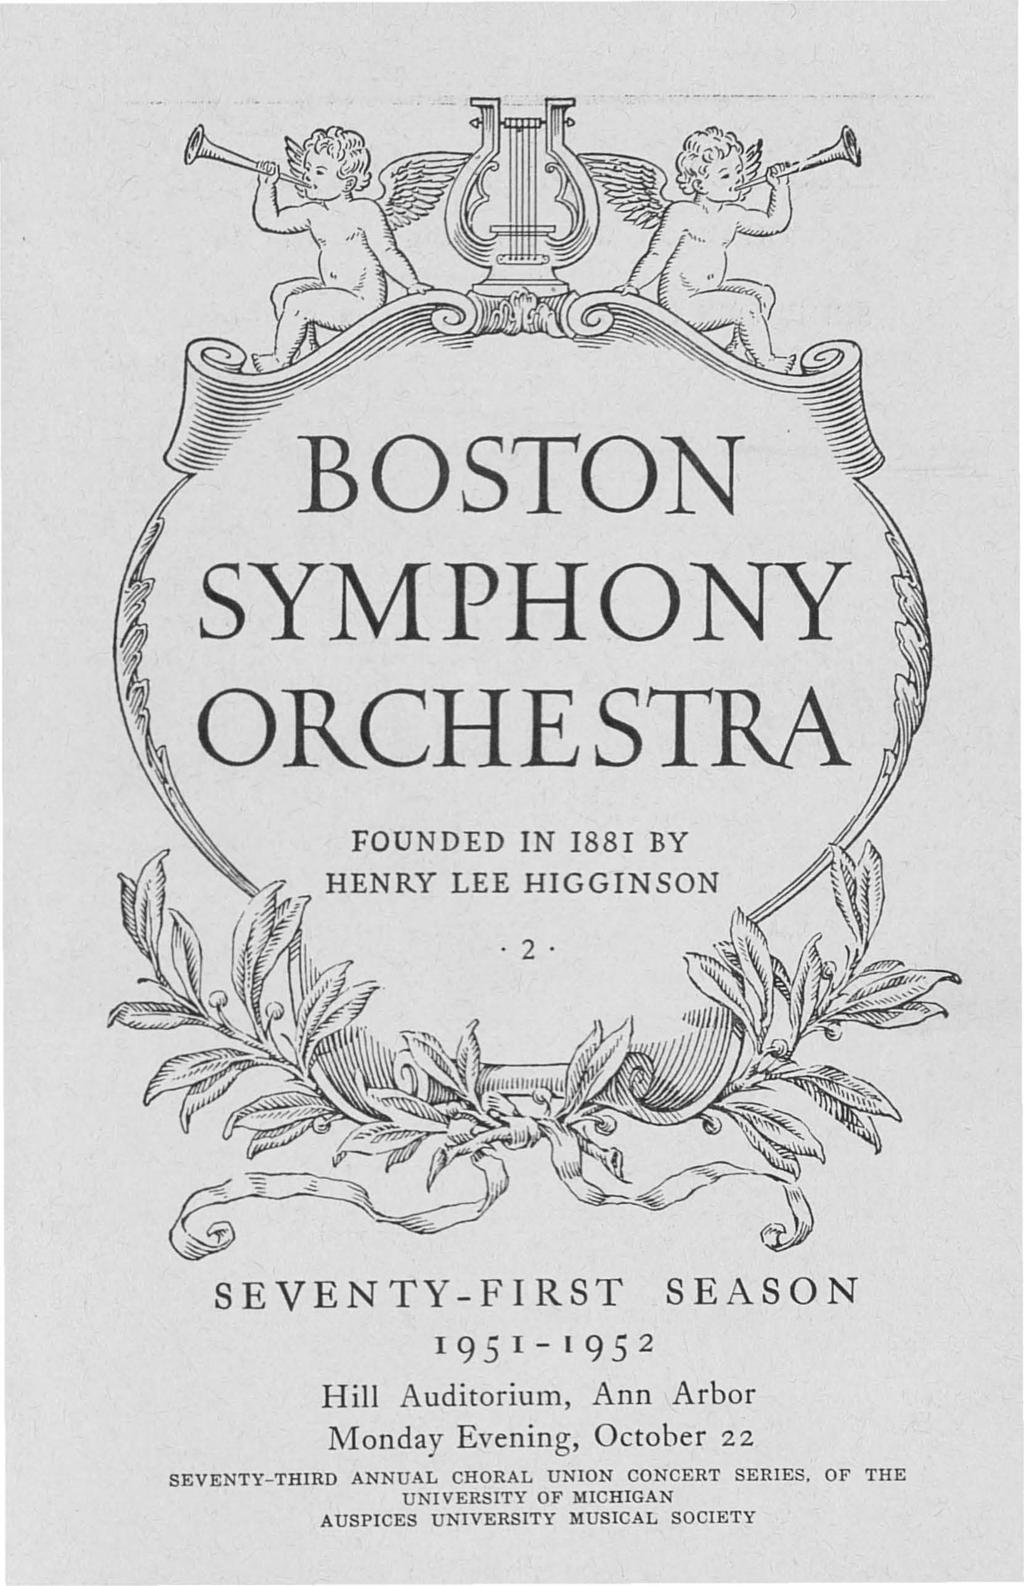 BOSTON SYMPHONY ORCHESTRA FOUNDED IN I88I BY SEVENTY-FIRST SEASON 195 1-1 95 2 Hill Auditorium, Ann Arbor Monday Evening,